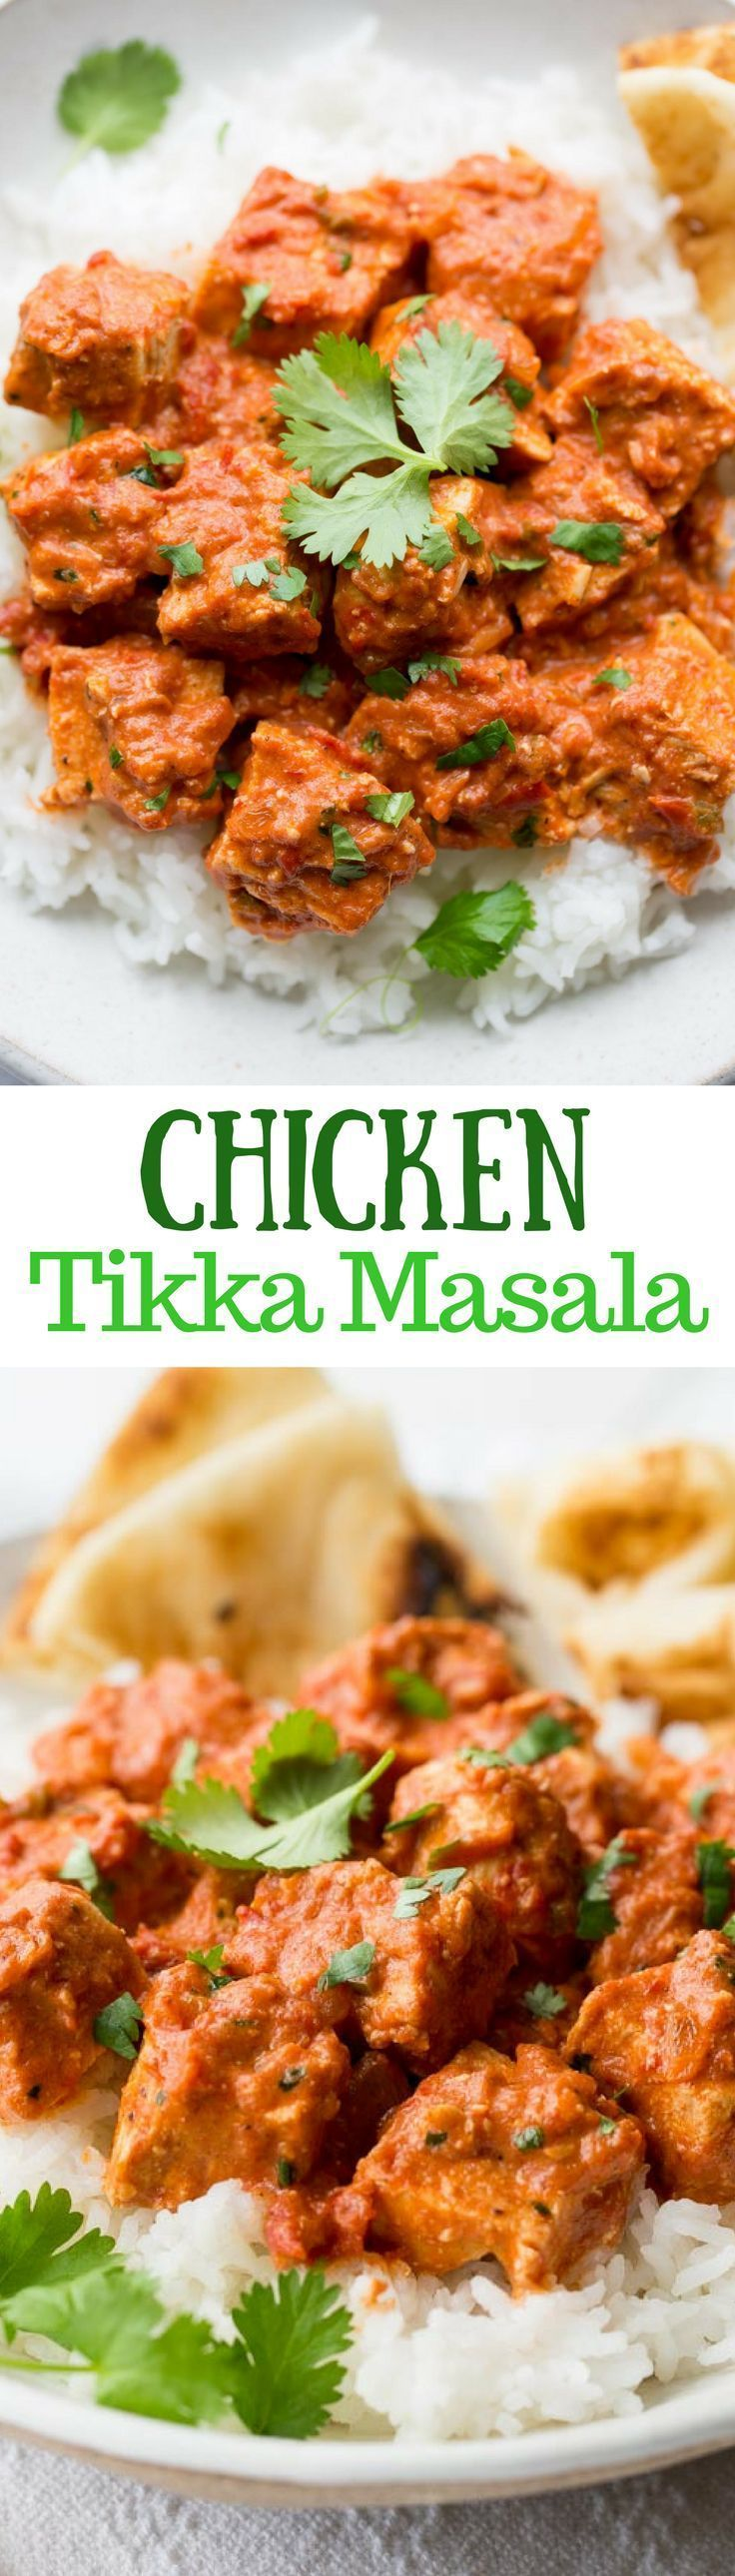 Chicken Tikka Masala ~ an incredibly popular dish made with tender chunks of yogurt marinated chicken, folded into a richly spiced tomato sauce with just a hint of heat from the cayenne. www.savingdessert.com